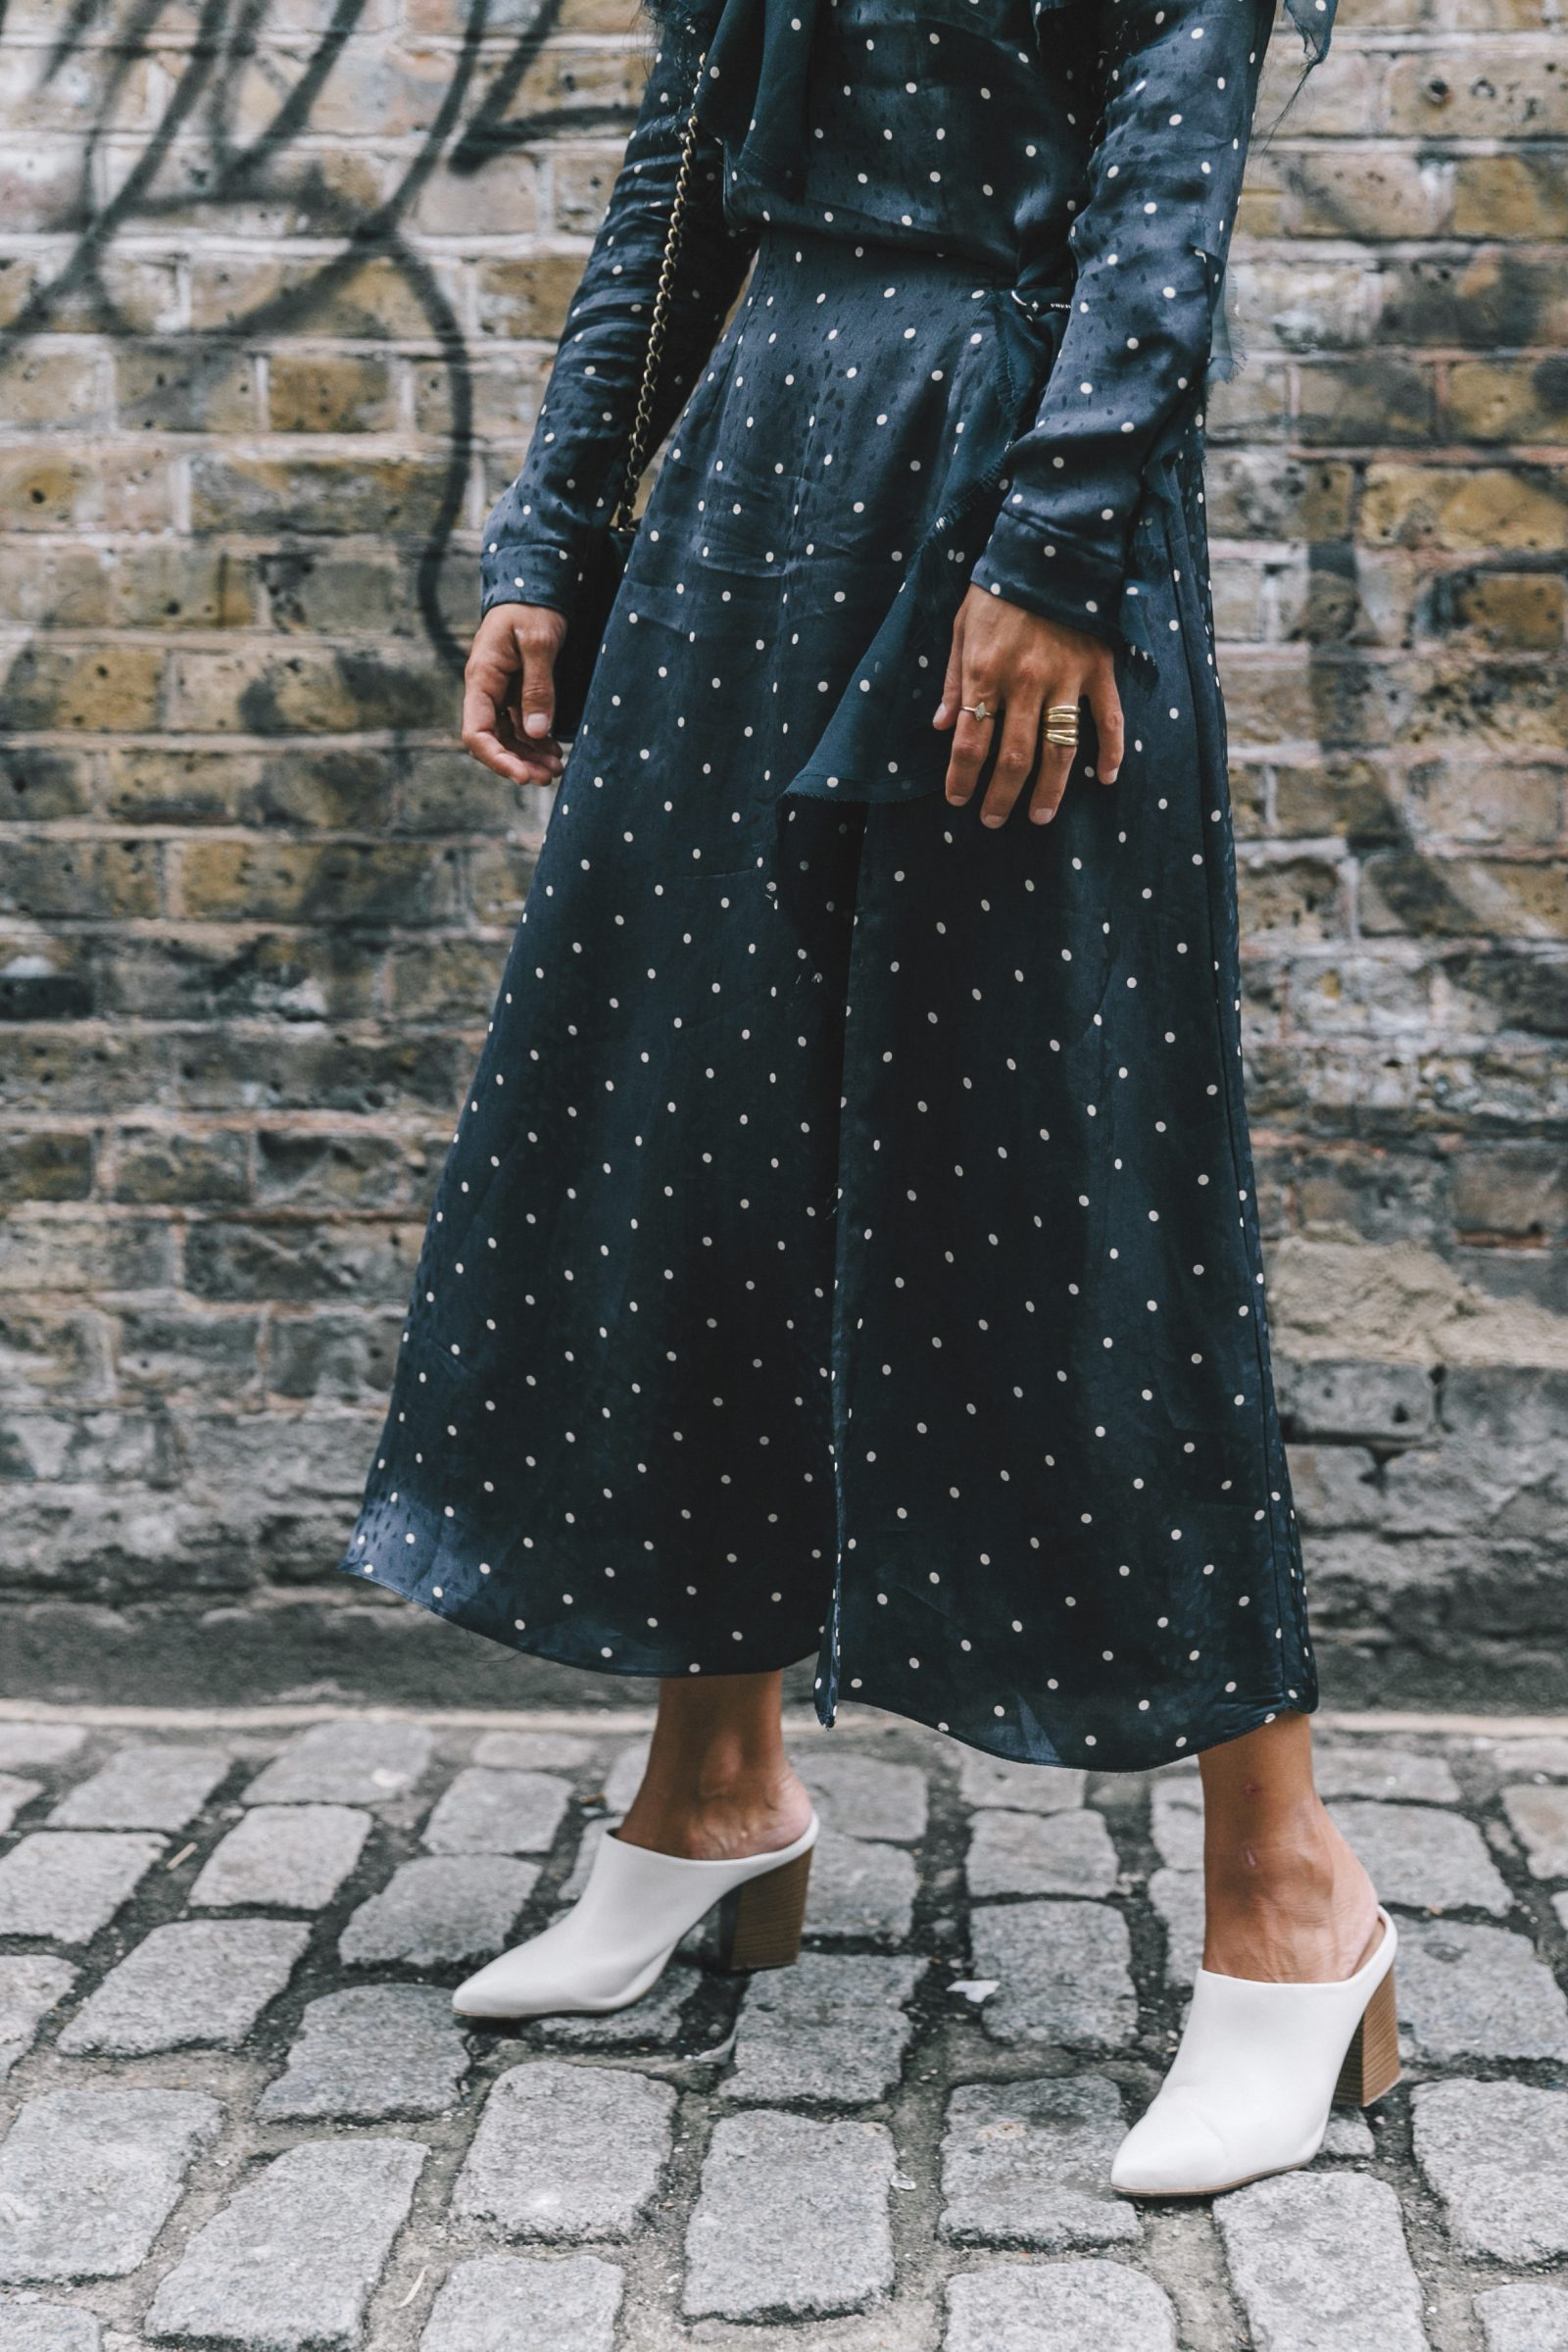 lfw-london_fashion_week_ss17-street_style-outfits-collage_vintage-vintage-topshop_unique-polka_dot_dress-white_mules-topshop_boutique-adenorah-16